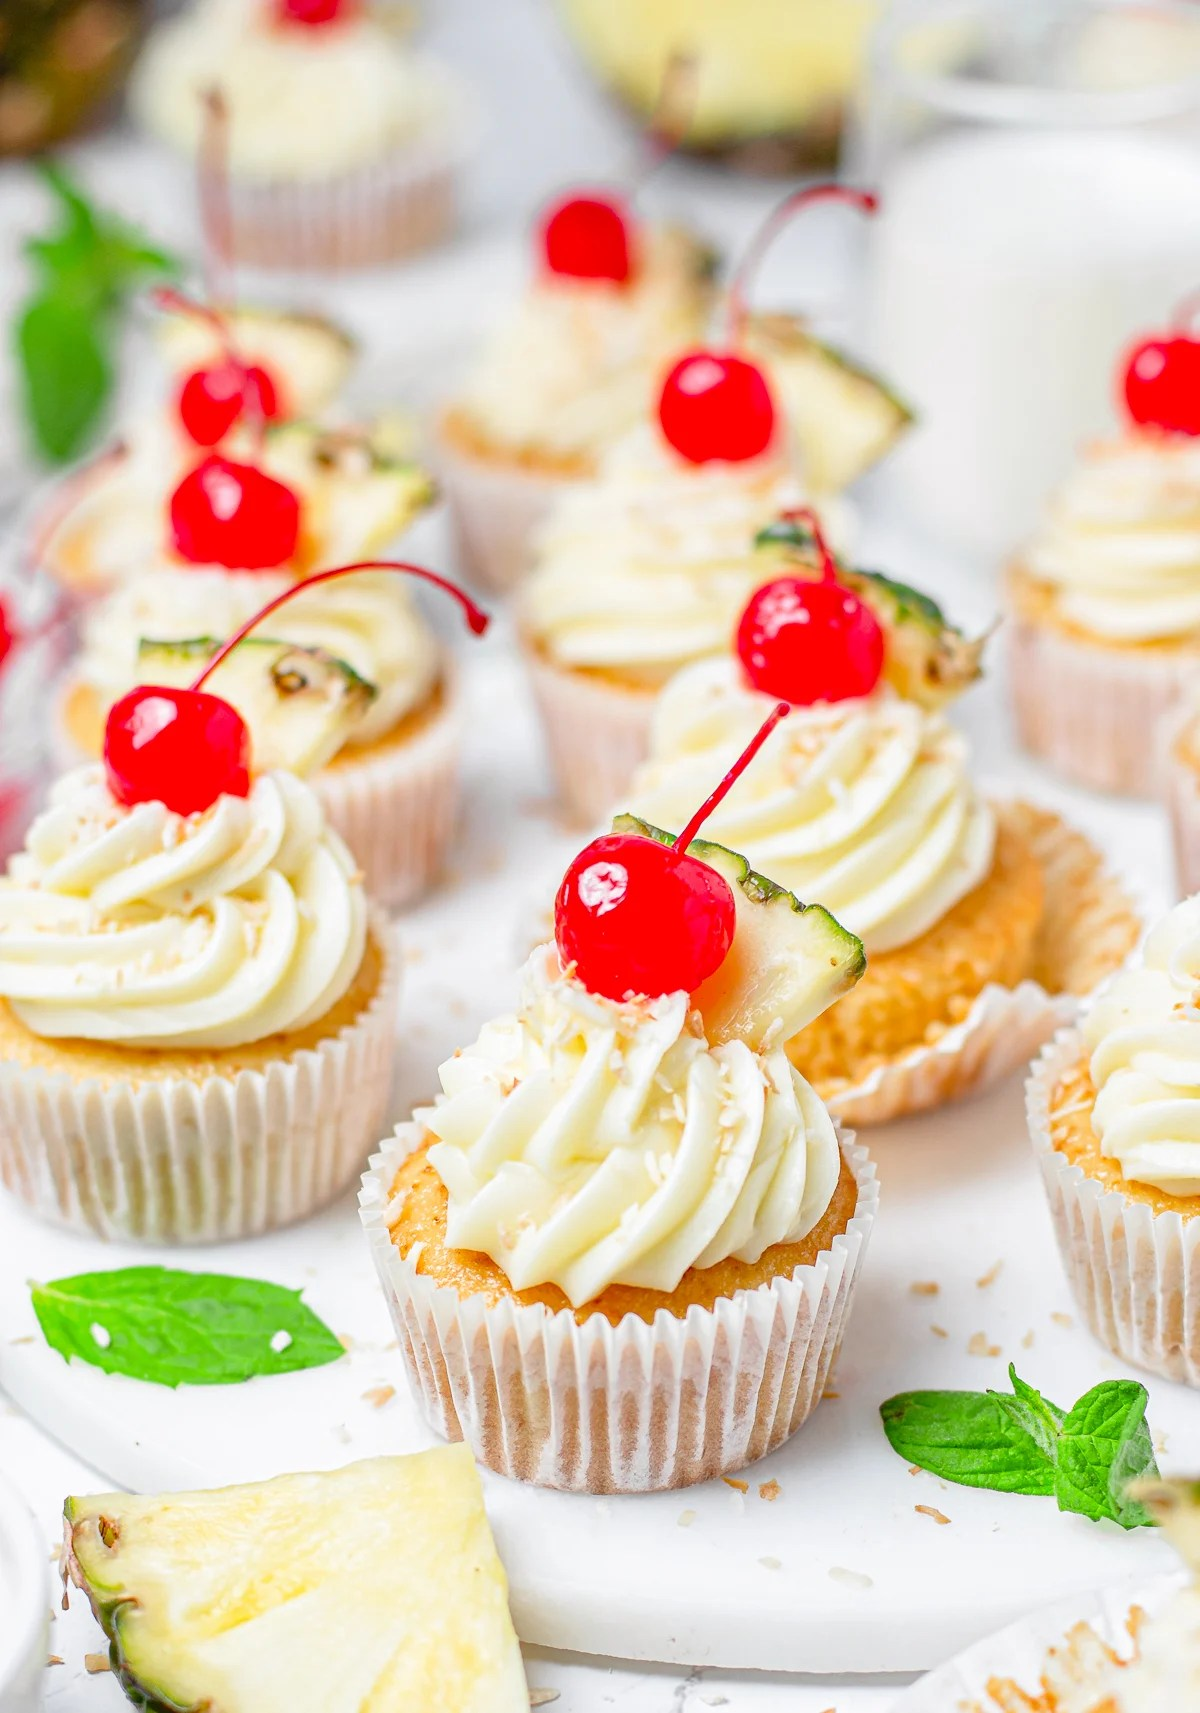 Pina Colada Cupcakes decorated topped with cherries on white platter